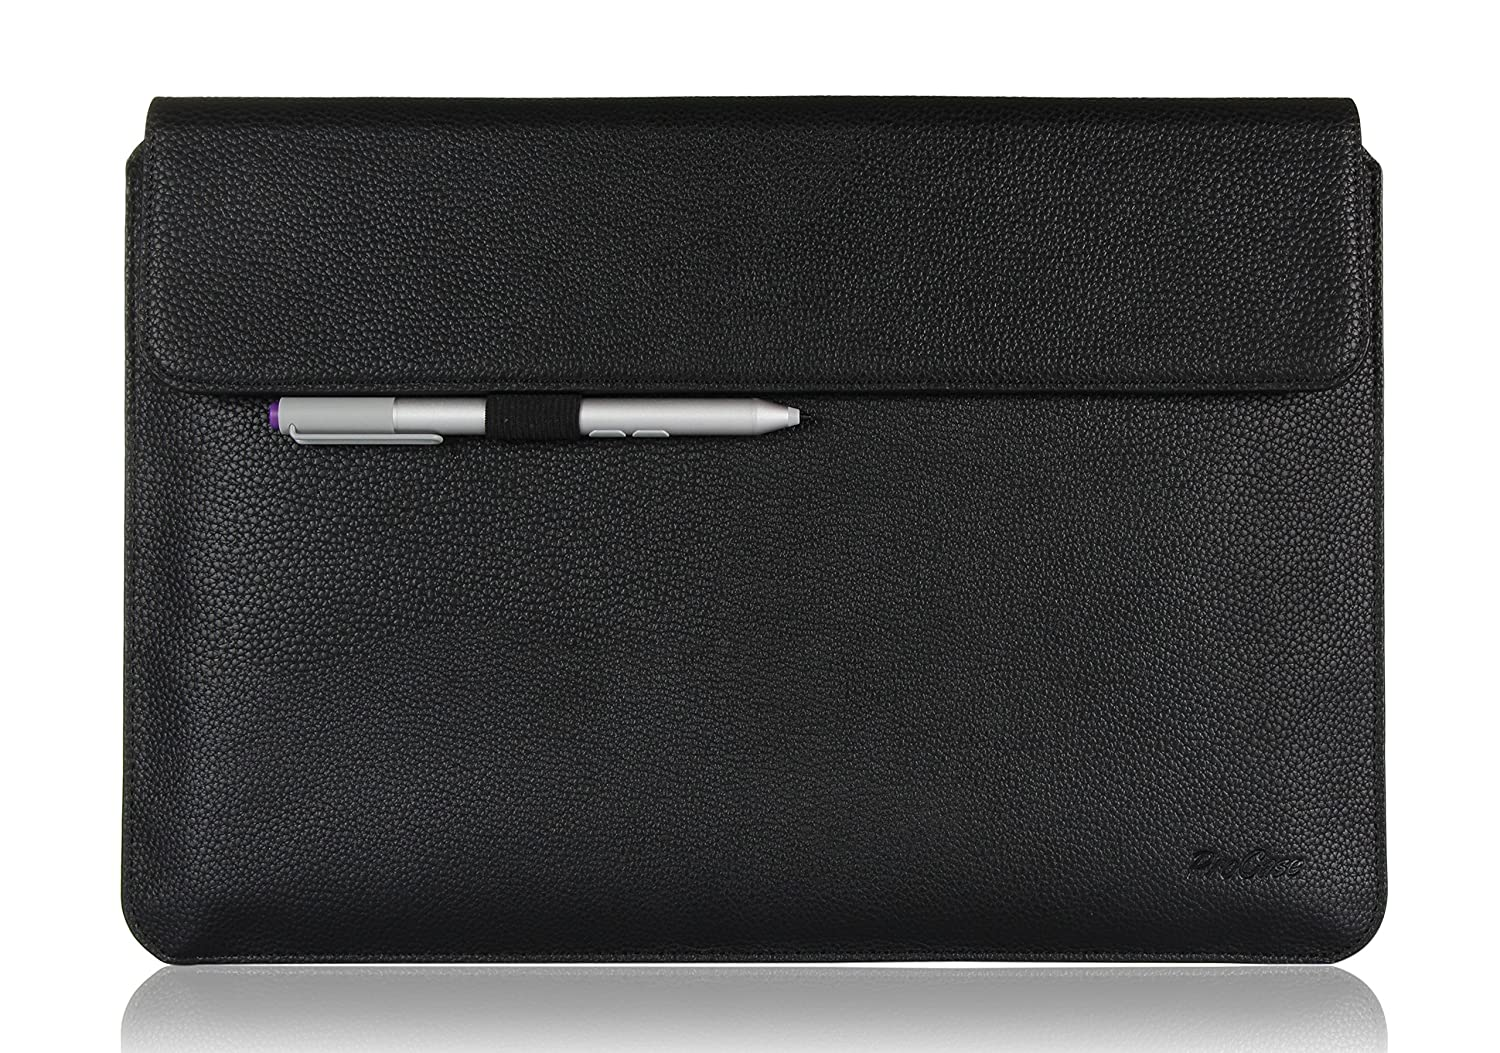 ProCase Wallet Sleeve Case for Microsoft Surface PRO 3